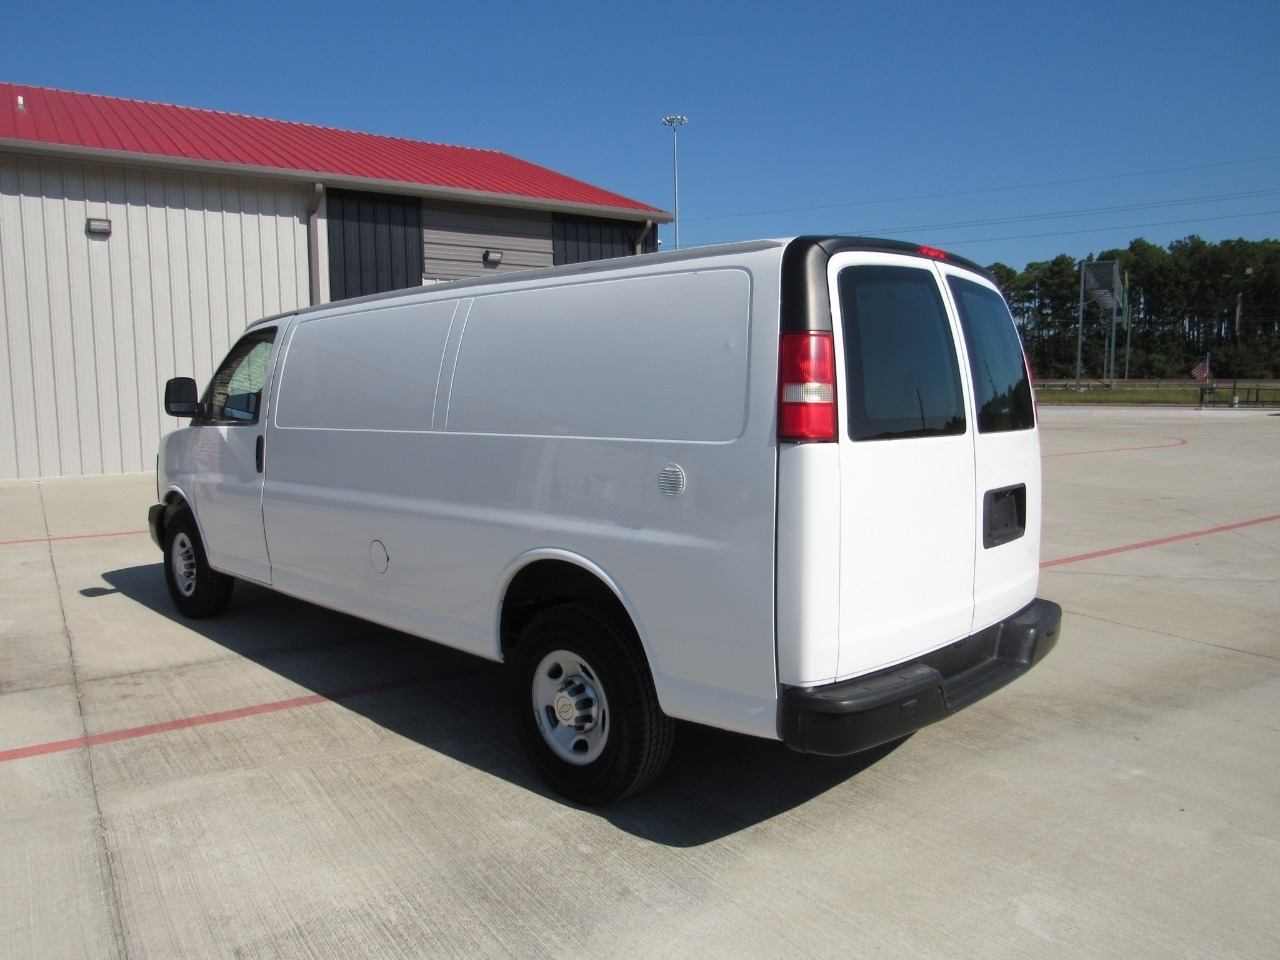 2011 Chevrolet Express 3500 3500 photo